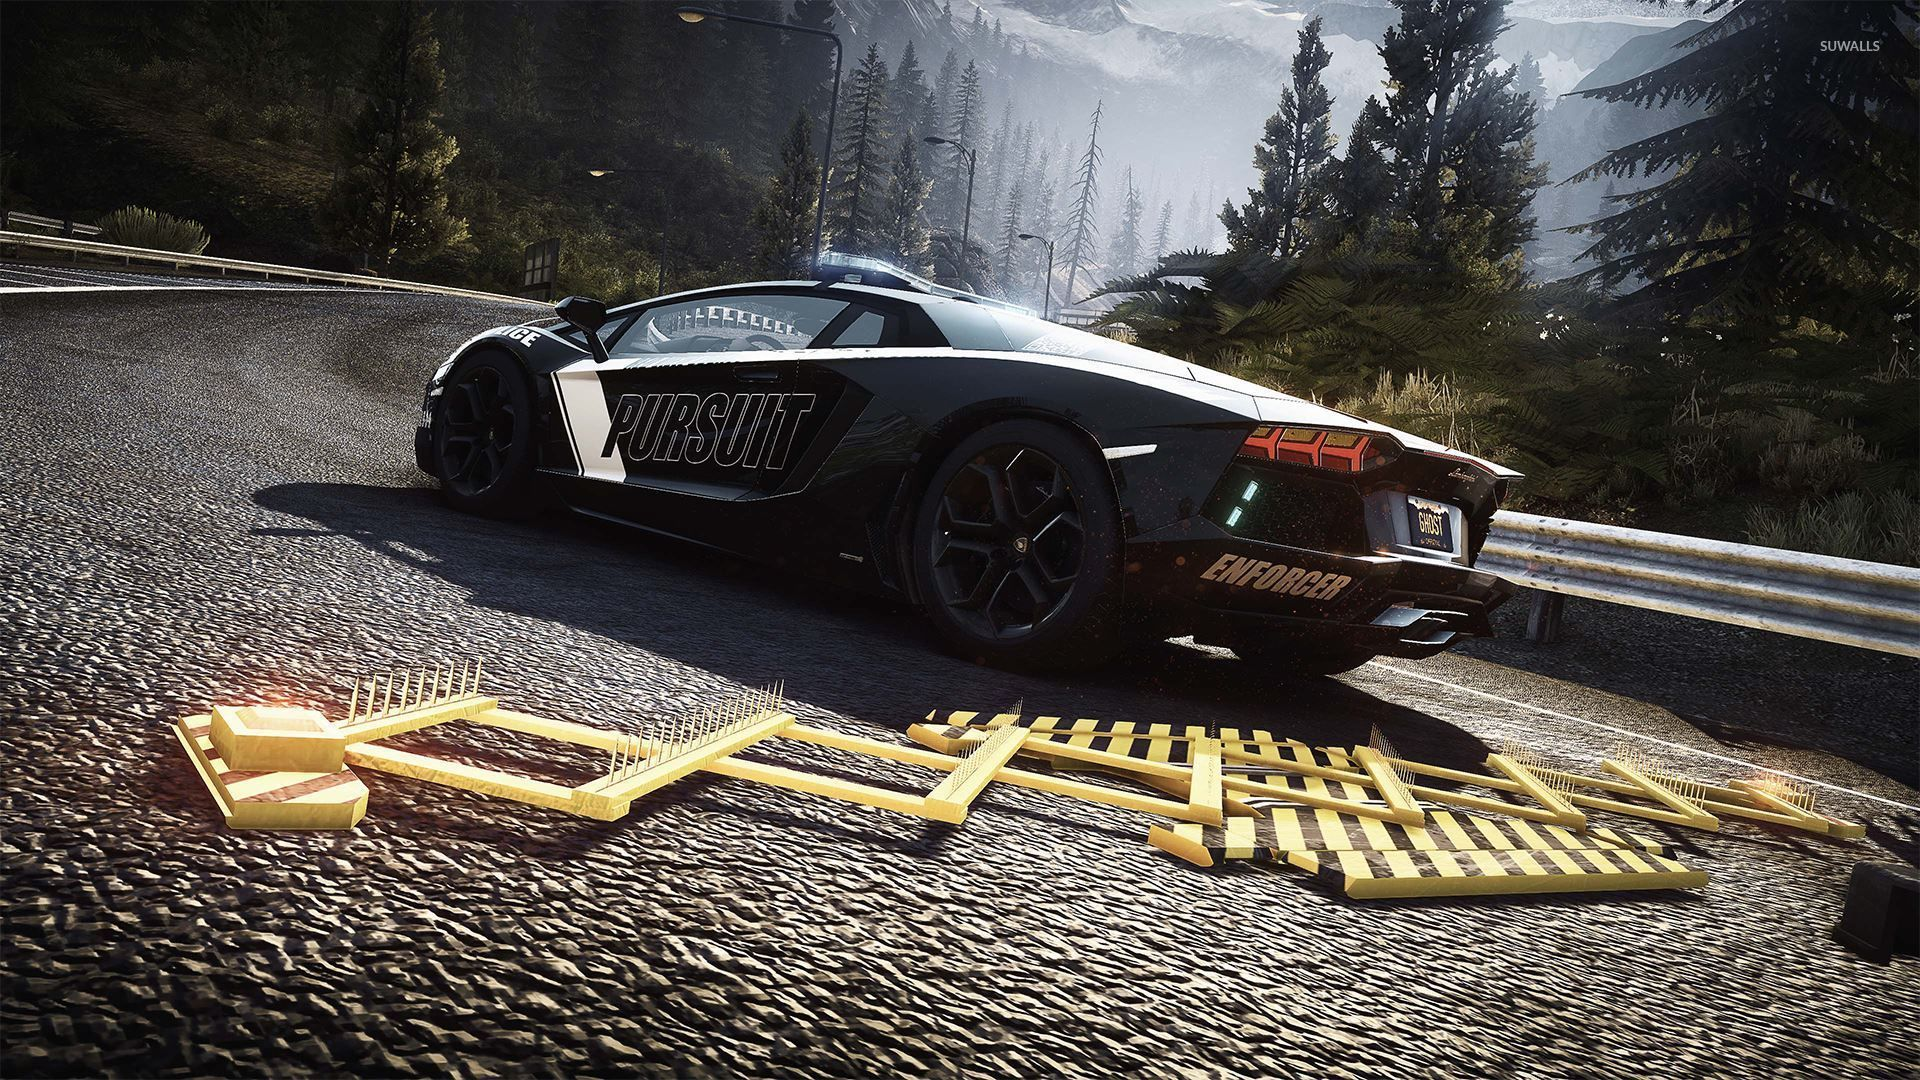 Nfs Hot Pursuit Wallpapers Wallpaperpulse Need For Speed Rivals Need For Speed Lamborghini Aventador